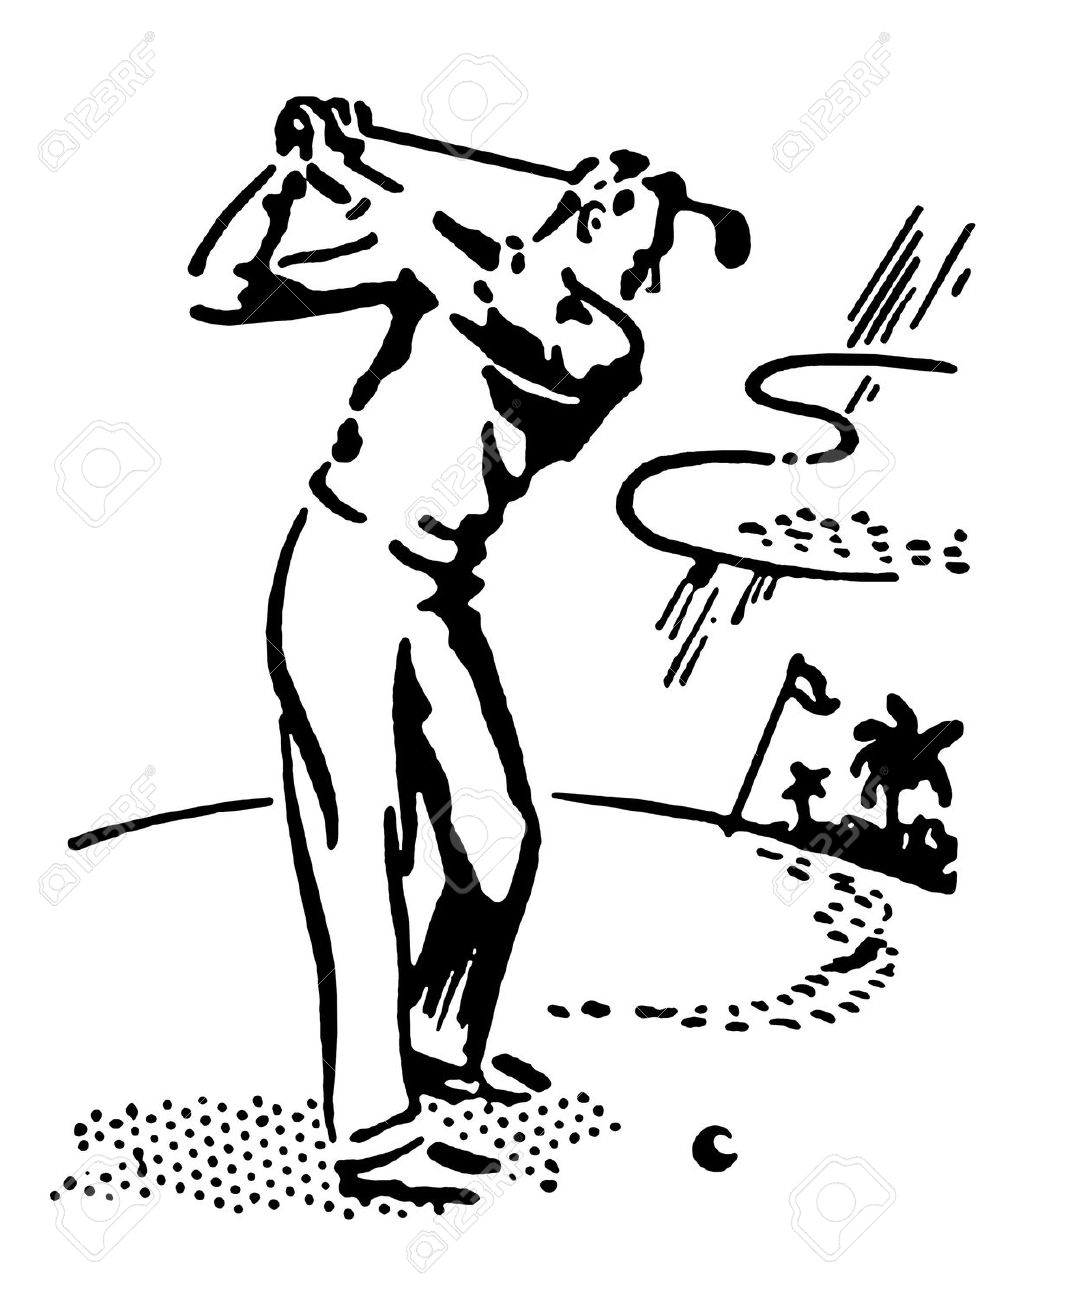 A black and white version of a vintage illustration of a man playing golf Stock Illustration - 14917510